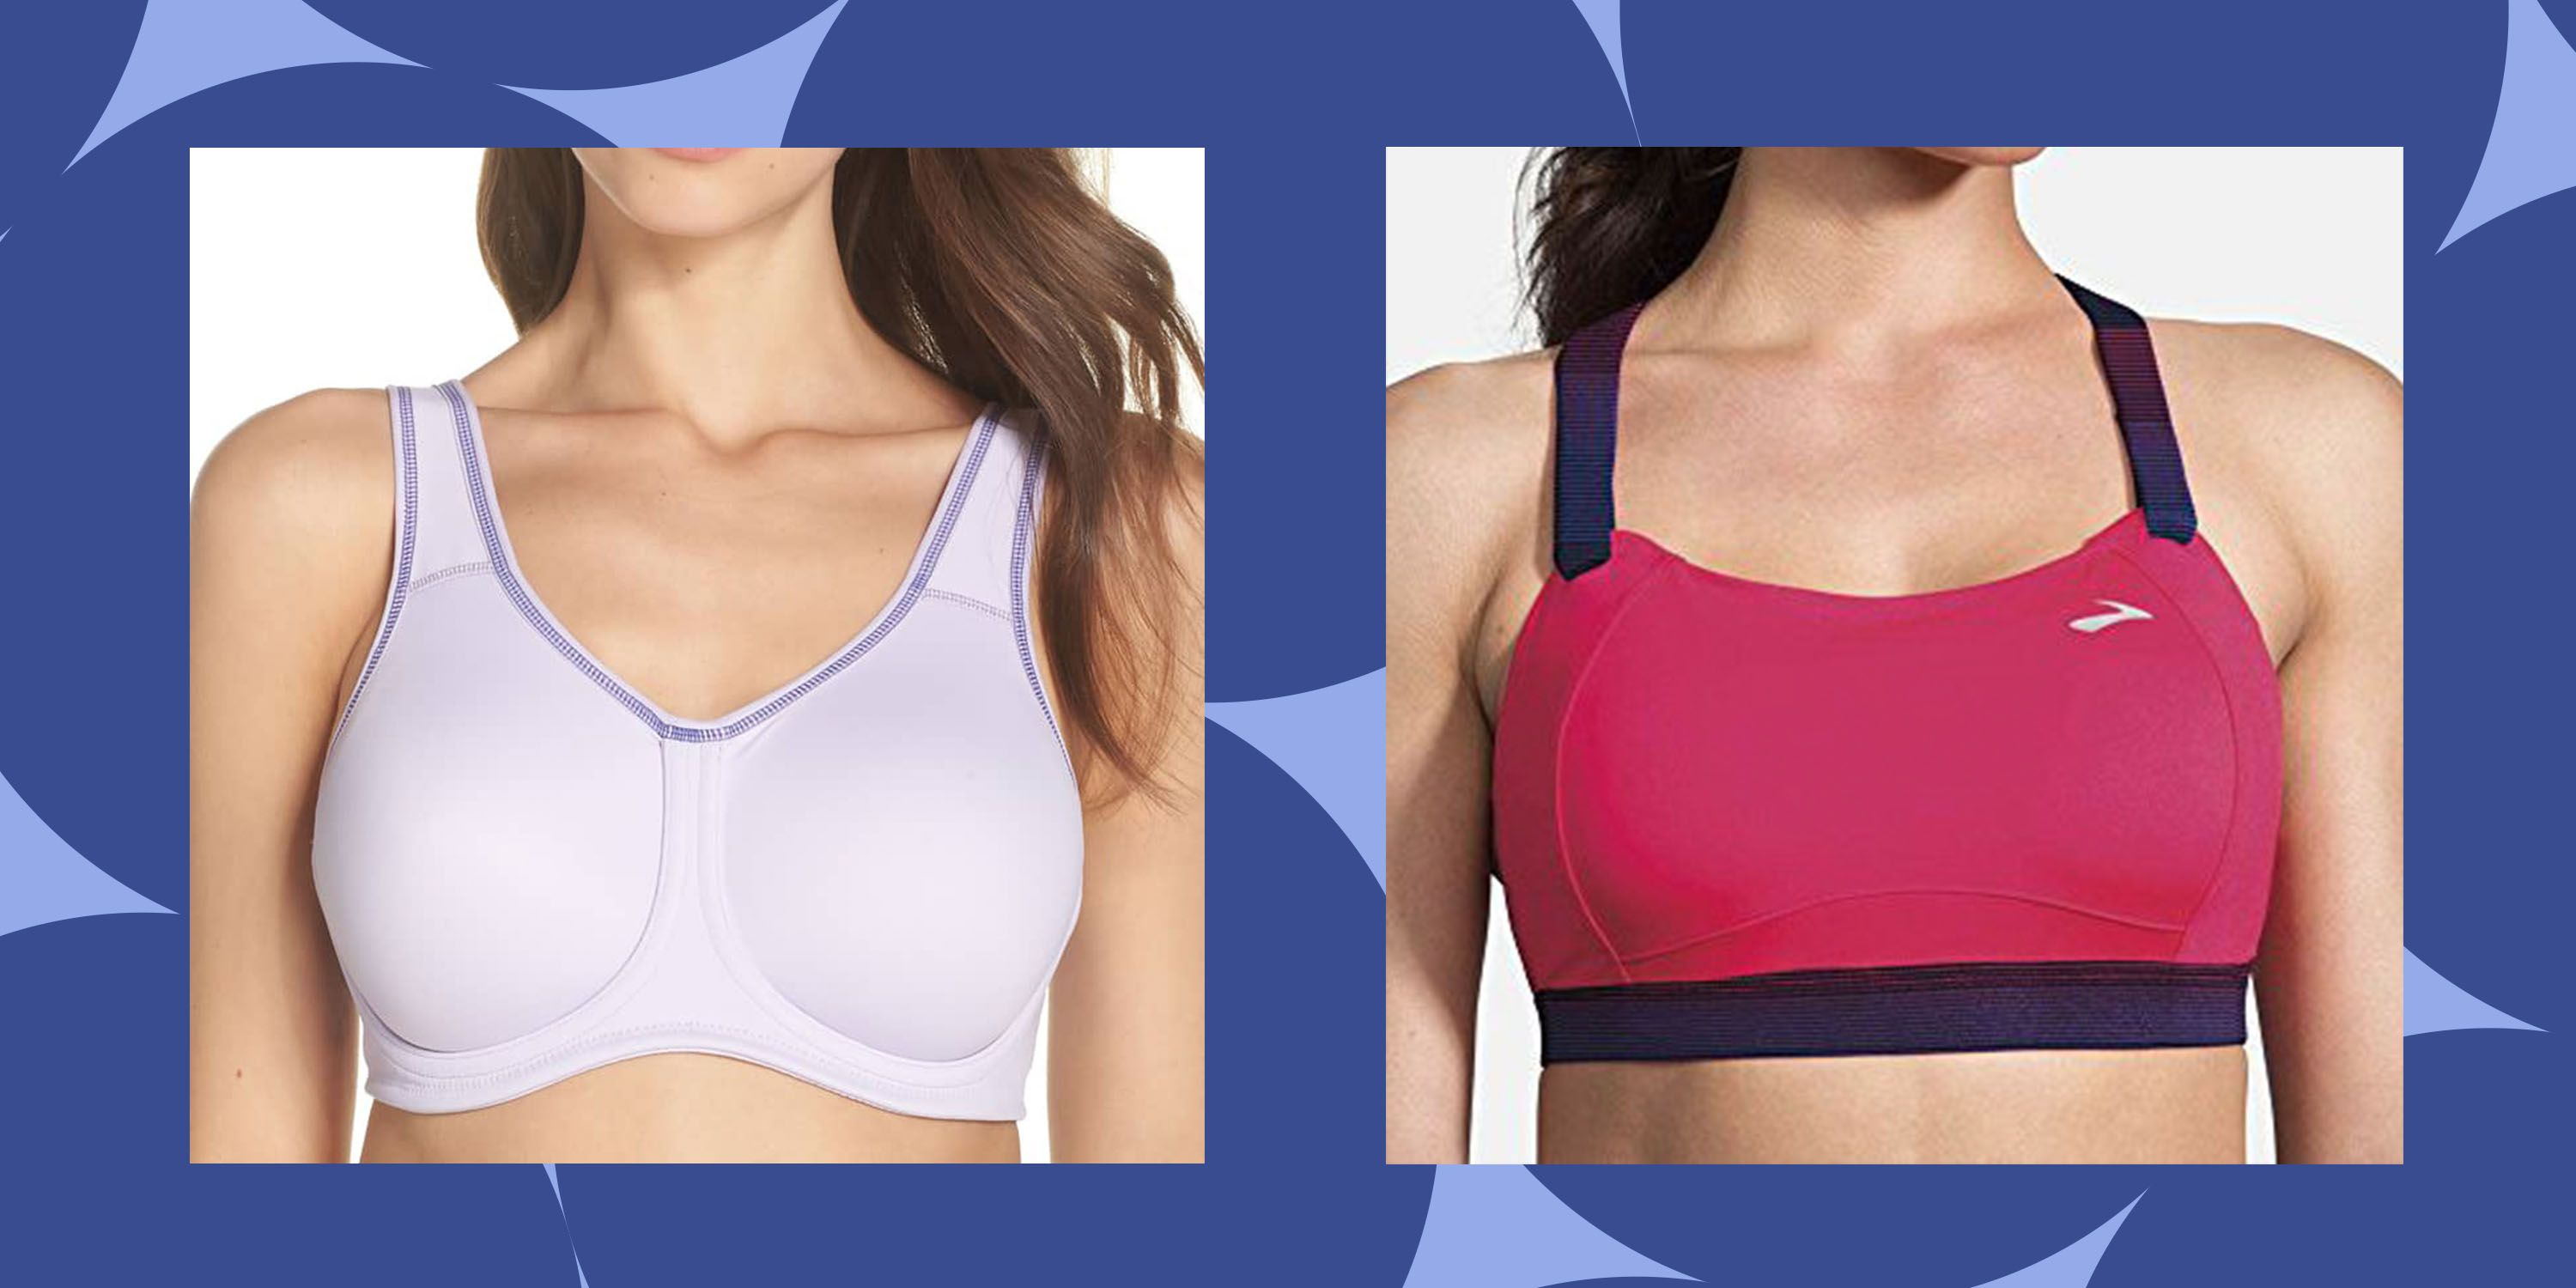 5bfa12ee1c 12 Best Sports Bras for Large Breasts - Supportive Sports Bras